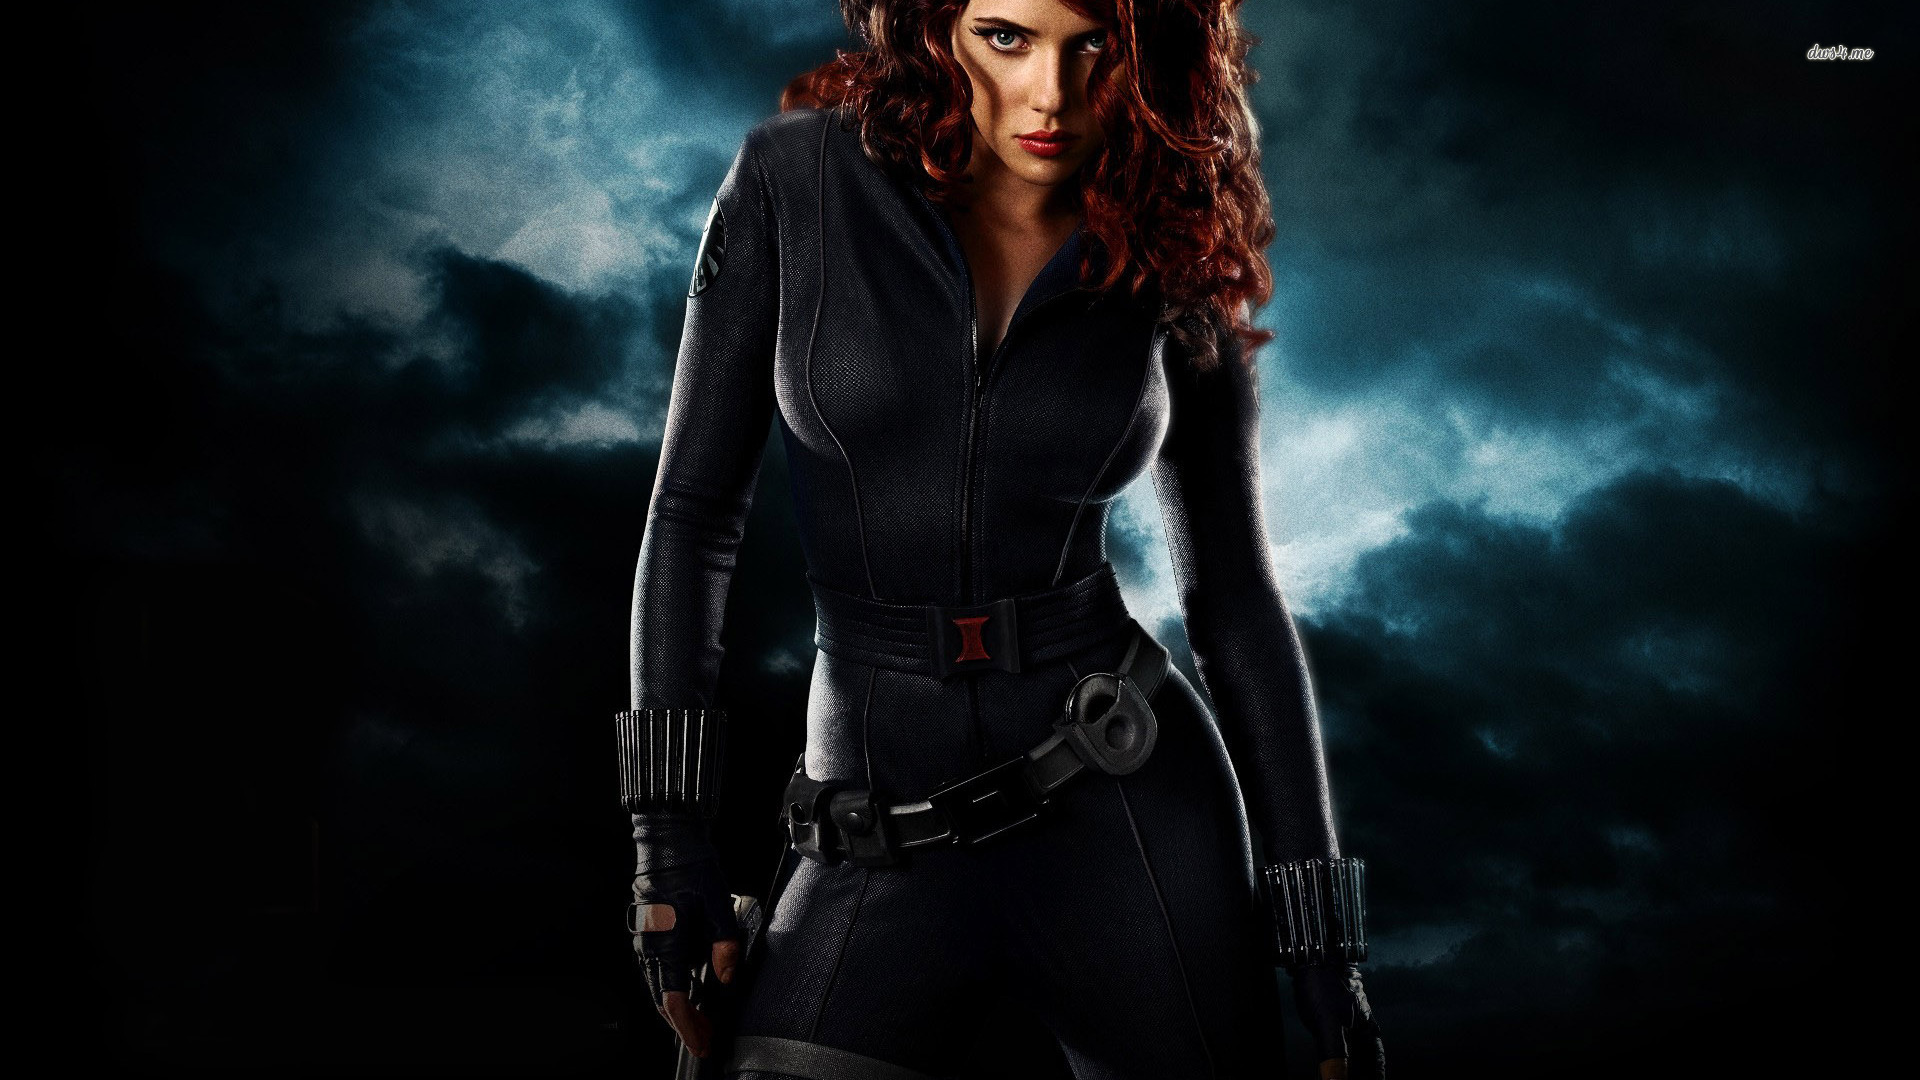 Black Widow Hd Wallpapers 1080p: Black Widow Wallpaper Natasha Romanoff Iron Man Movie 1920x1080px